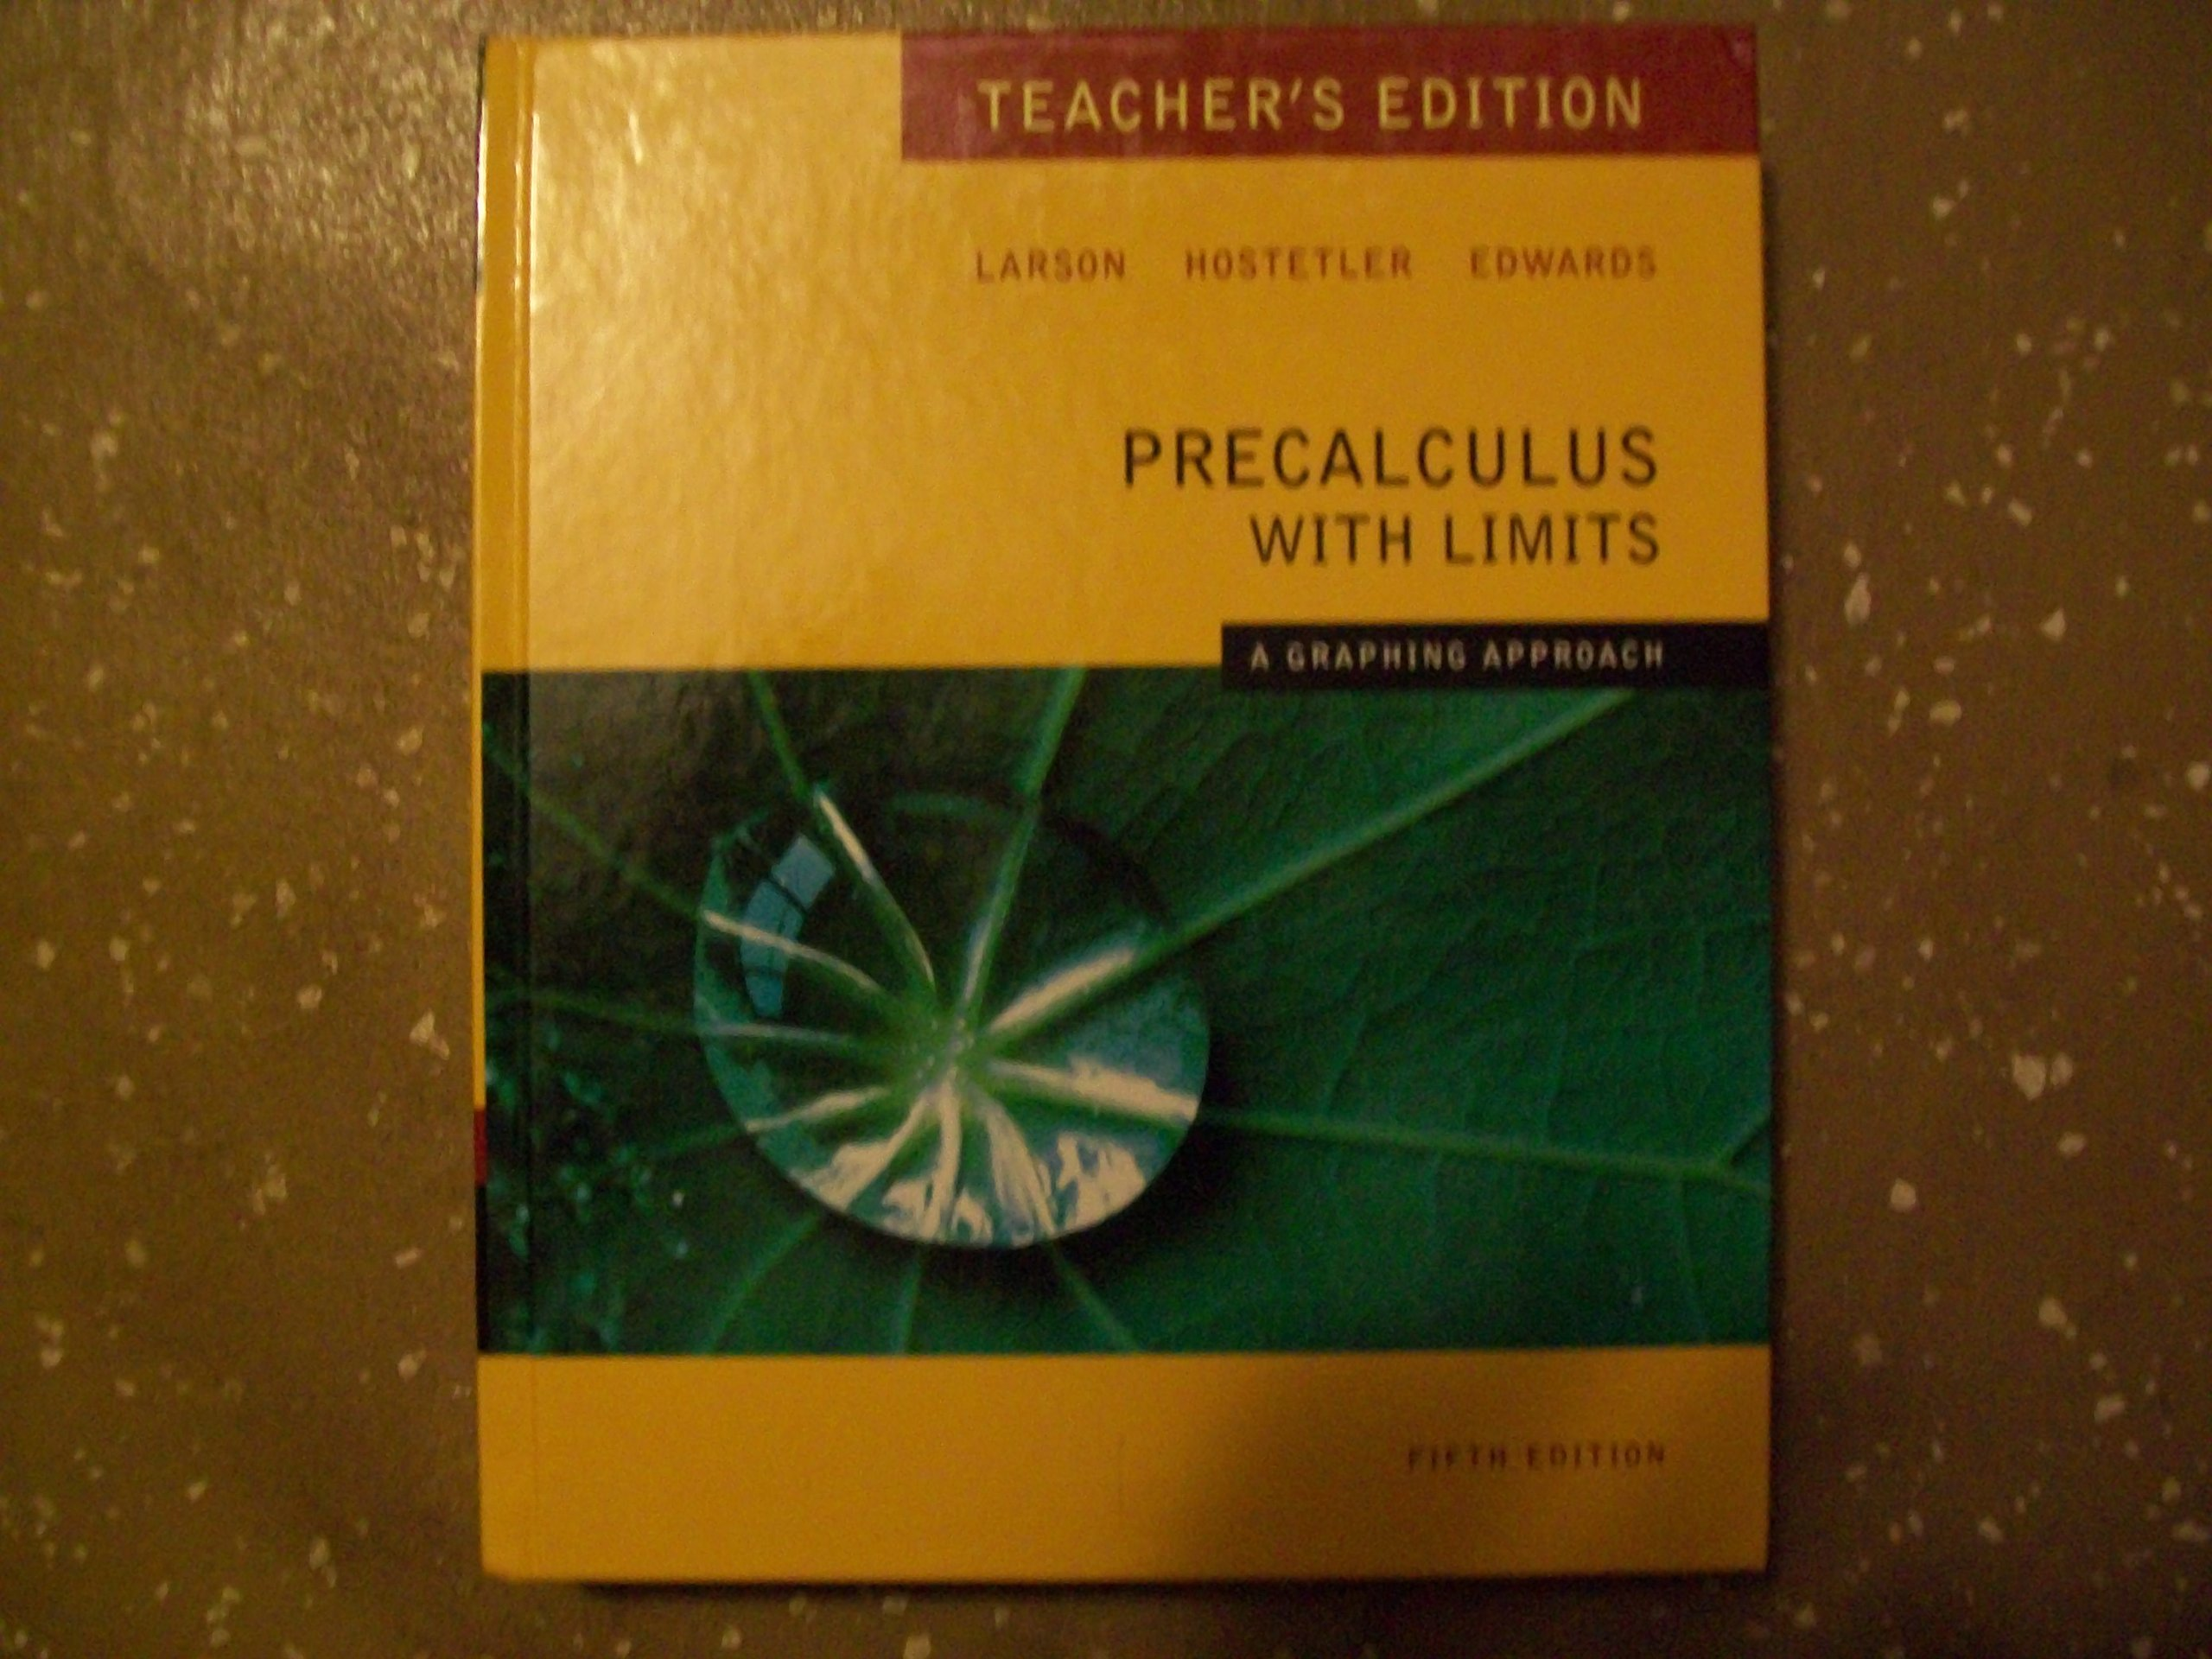 Precalculus with Limits: A Graphing Approach, Teacher's